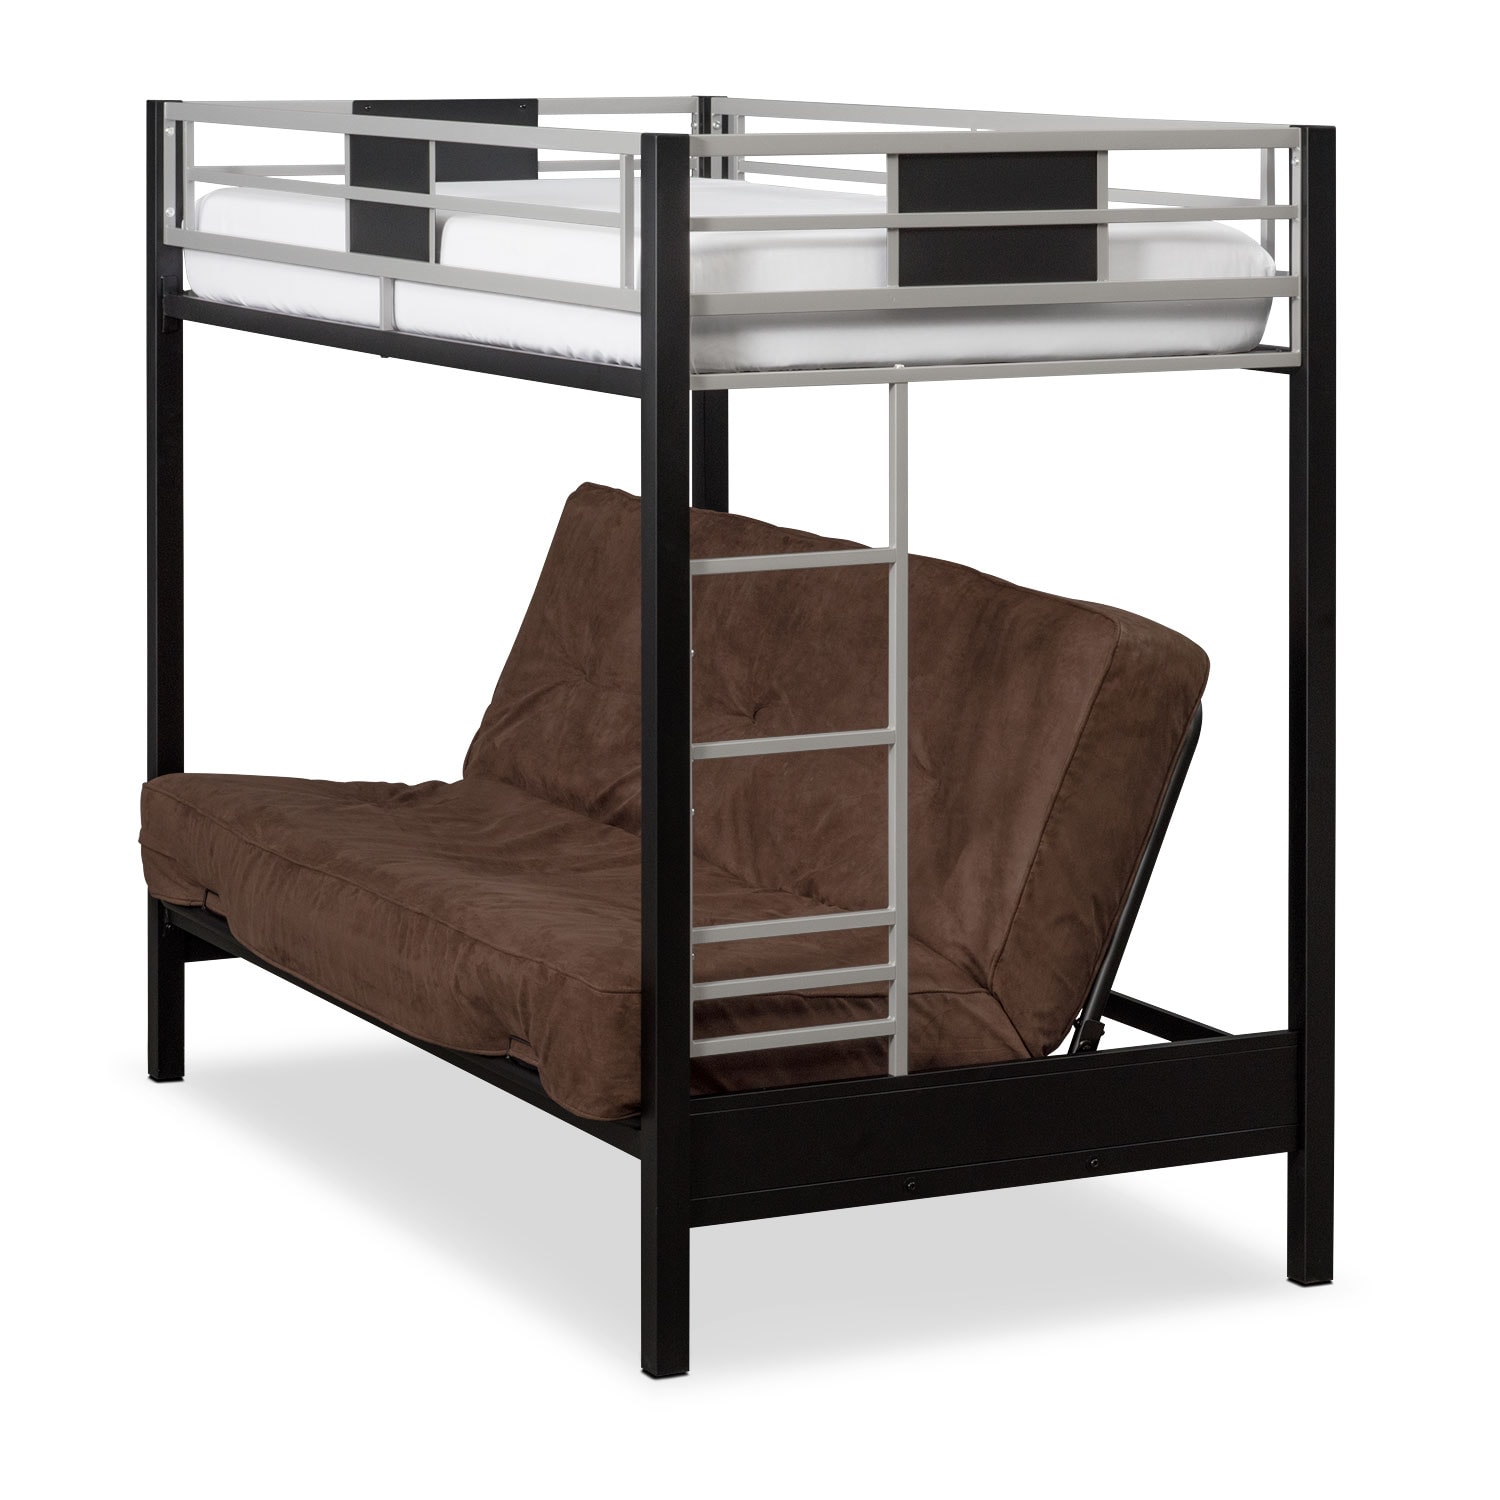 Bedroom Furniture - Samba Youth Twin/Full Futon Bunk Bed with Chocolate Futon Mattress